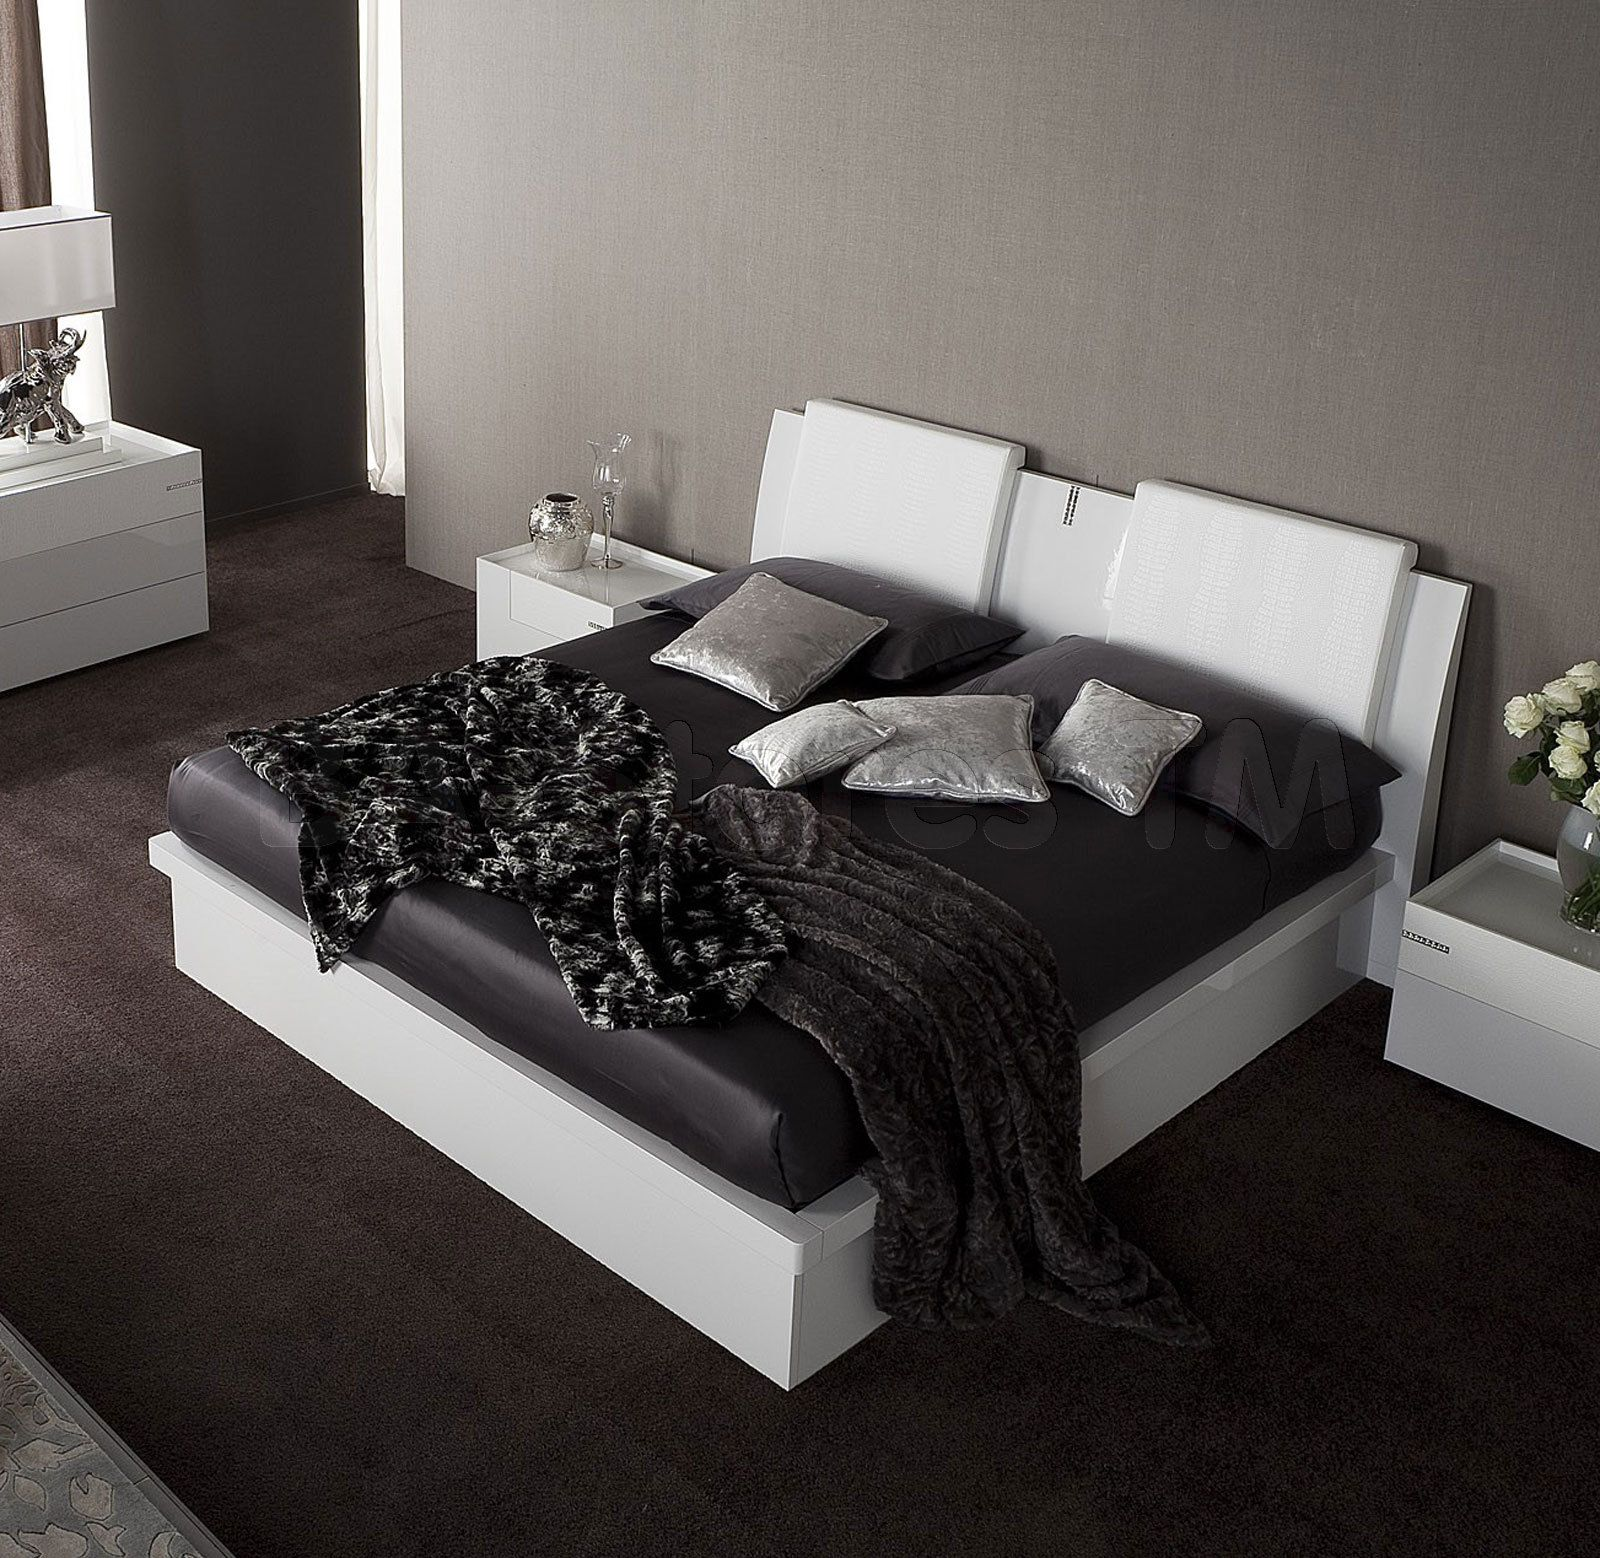 rossetto usa diamond platform bed in white by rosetto  beds by  - rossetto usa diamond platform bed in white by rosetto